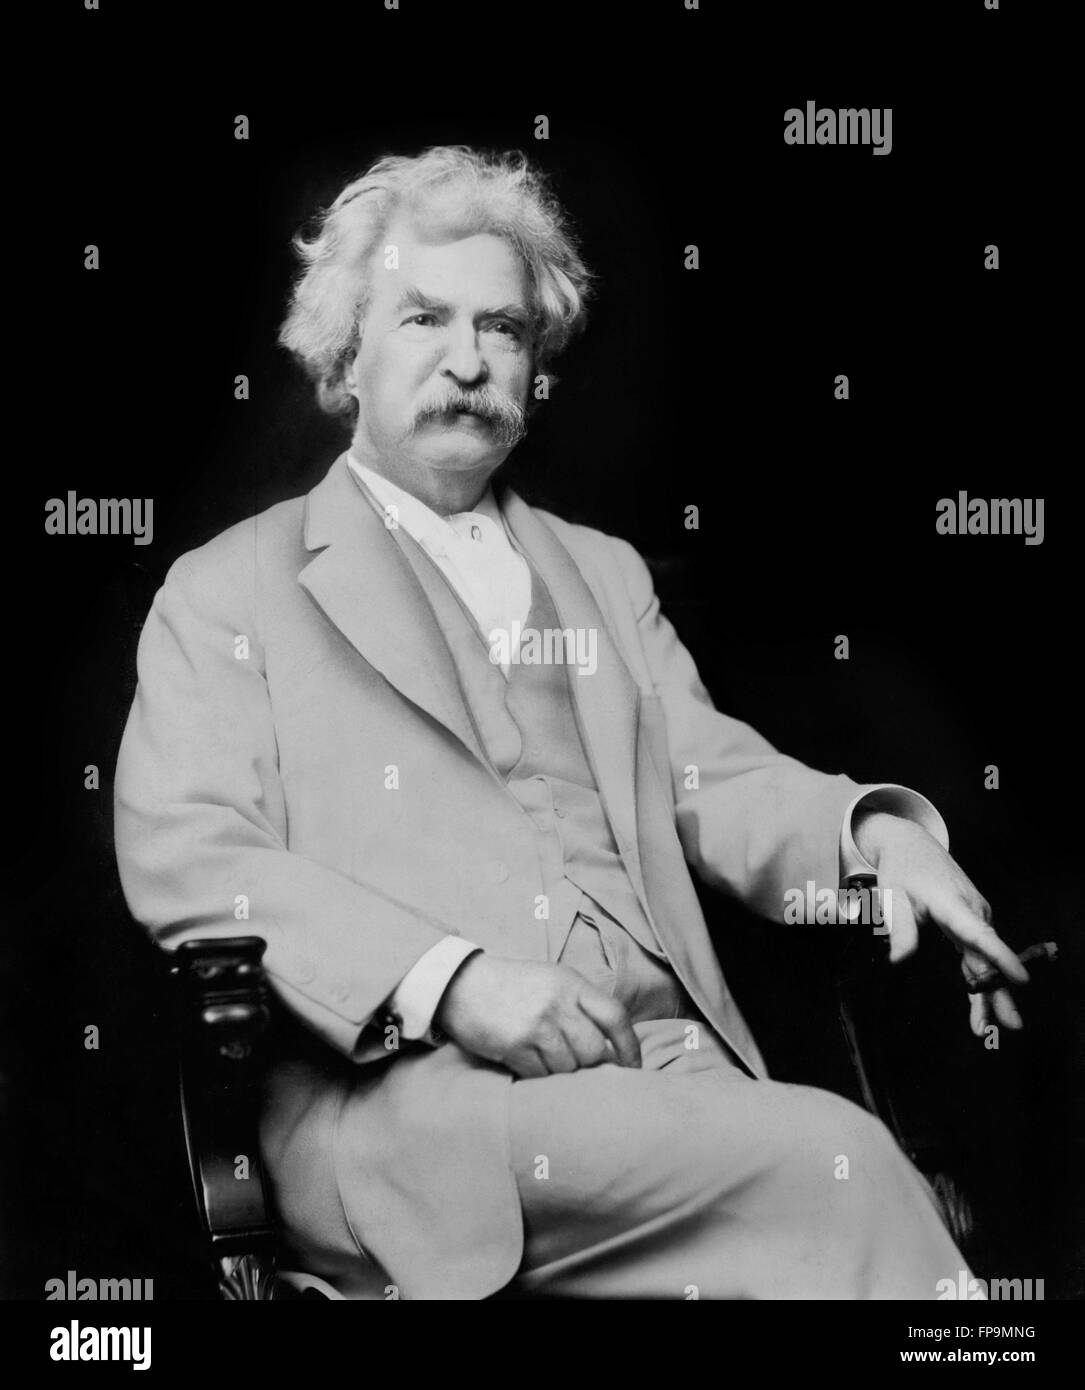 Mark Twain. Portrait of the American writer Samuel Langhorne Clemens, by A F Bradley, 1907 - Stock Image